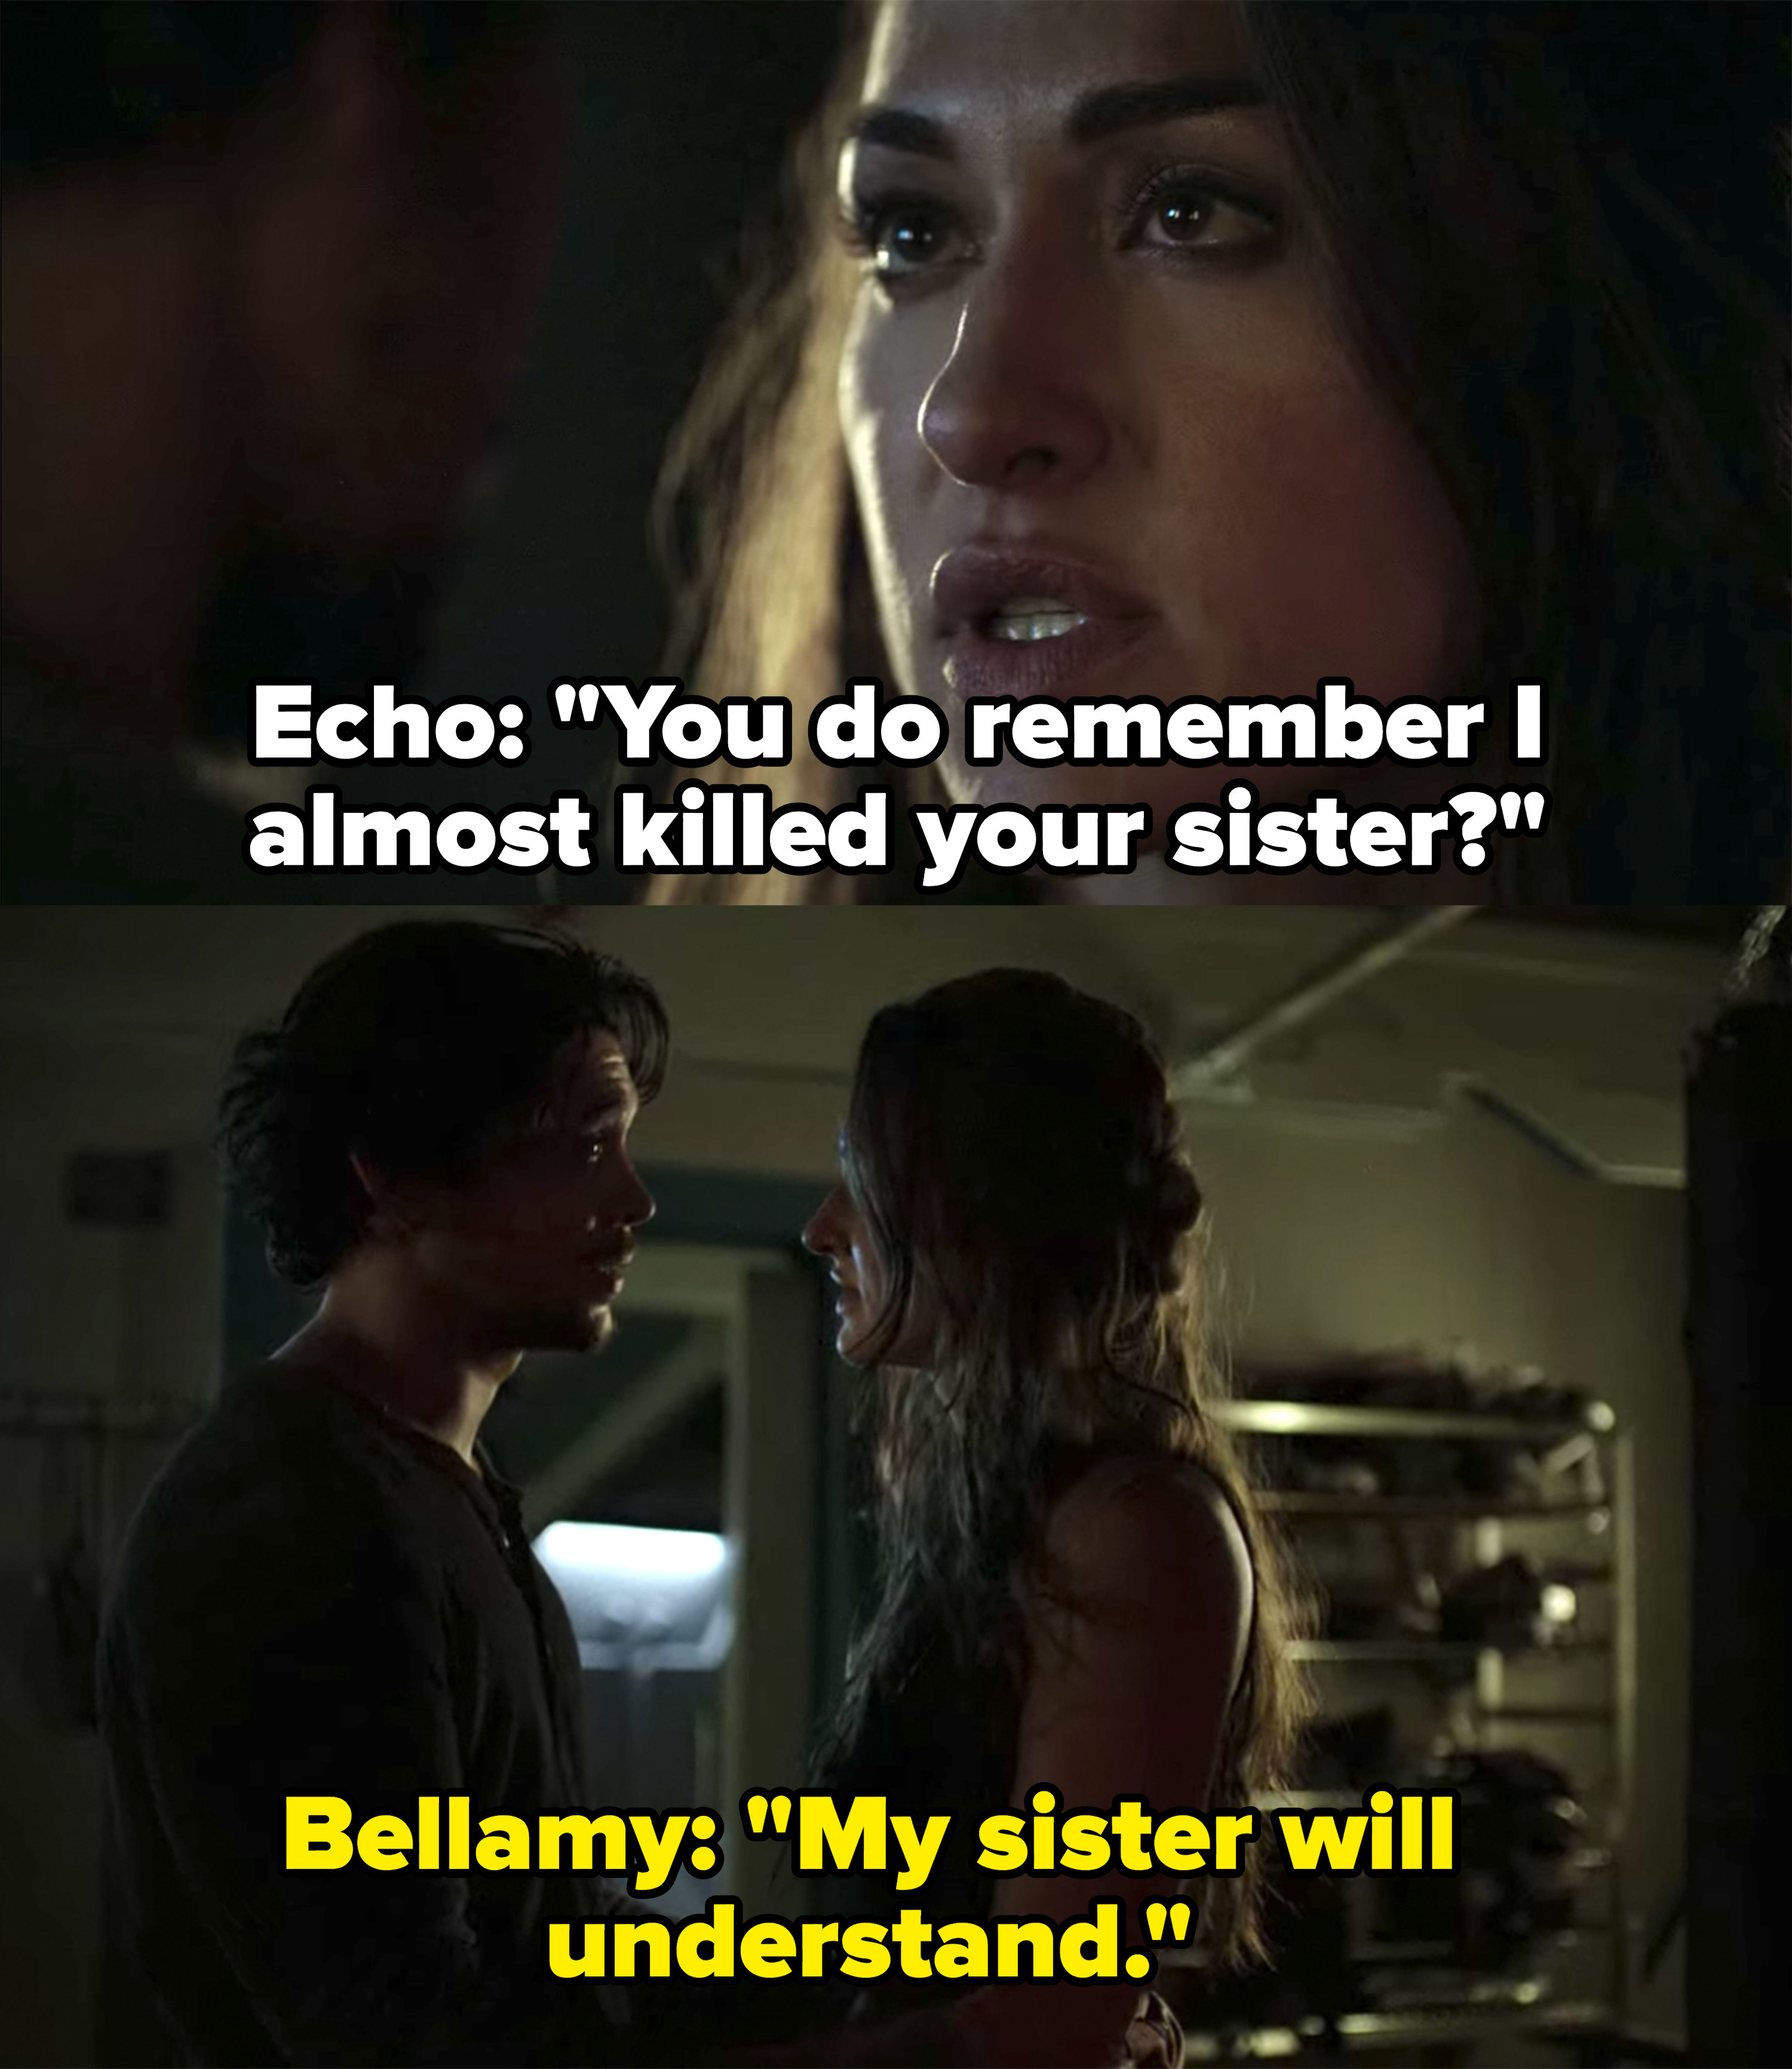 Echo reminds Bellamy she almost killed her sister, Bellamy claims his sister will understand